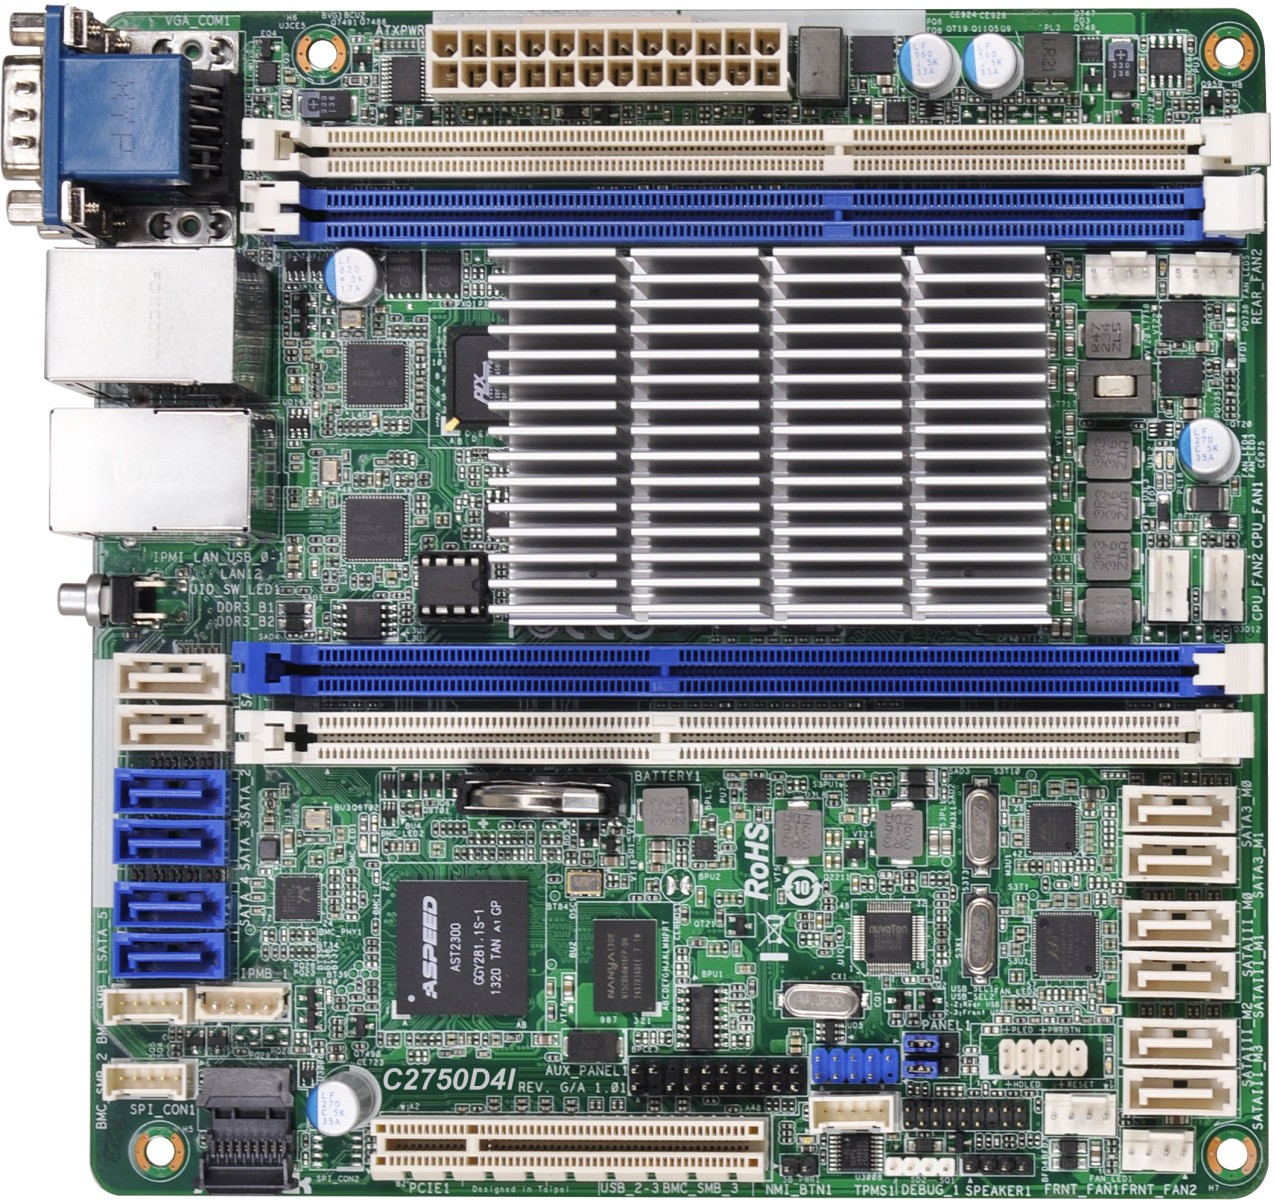 asrock rack c2750d4i review a storage motherboard management visual inspection